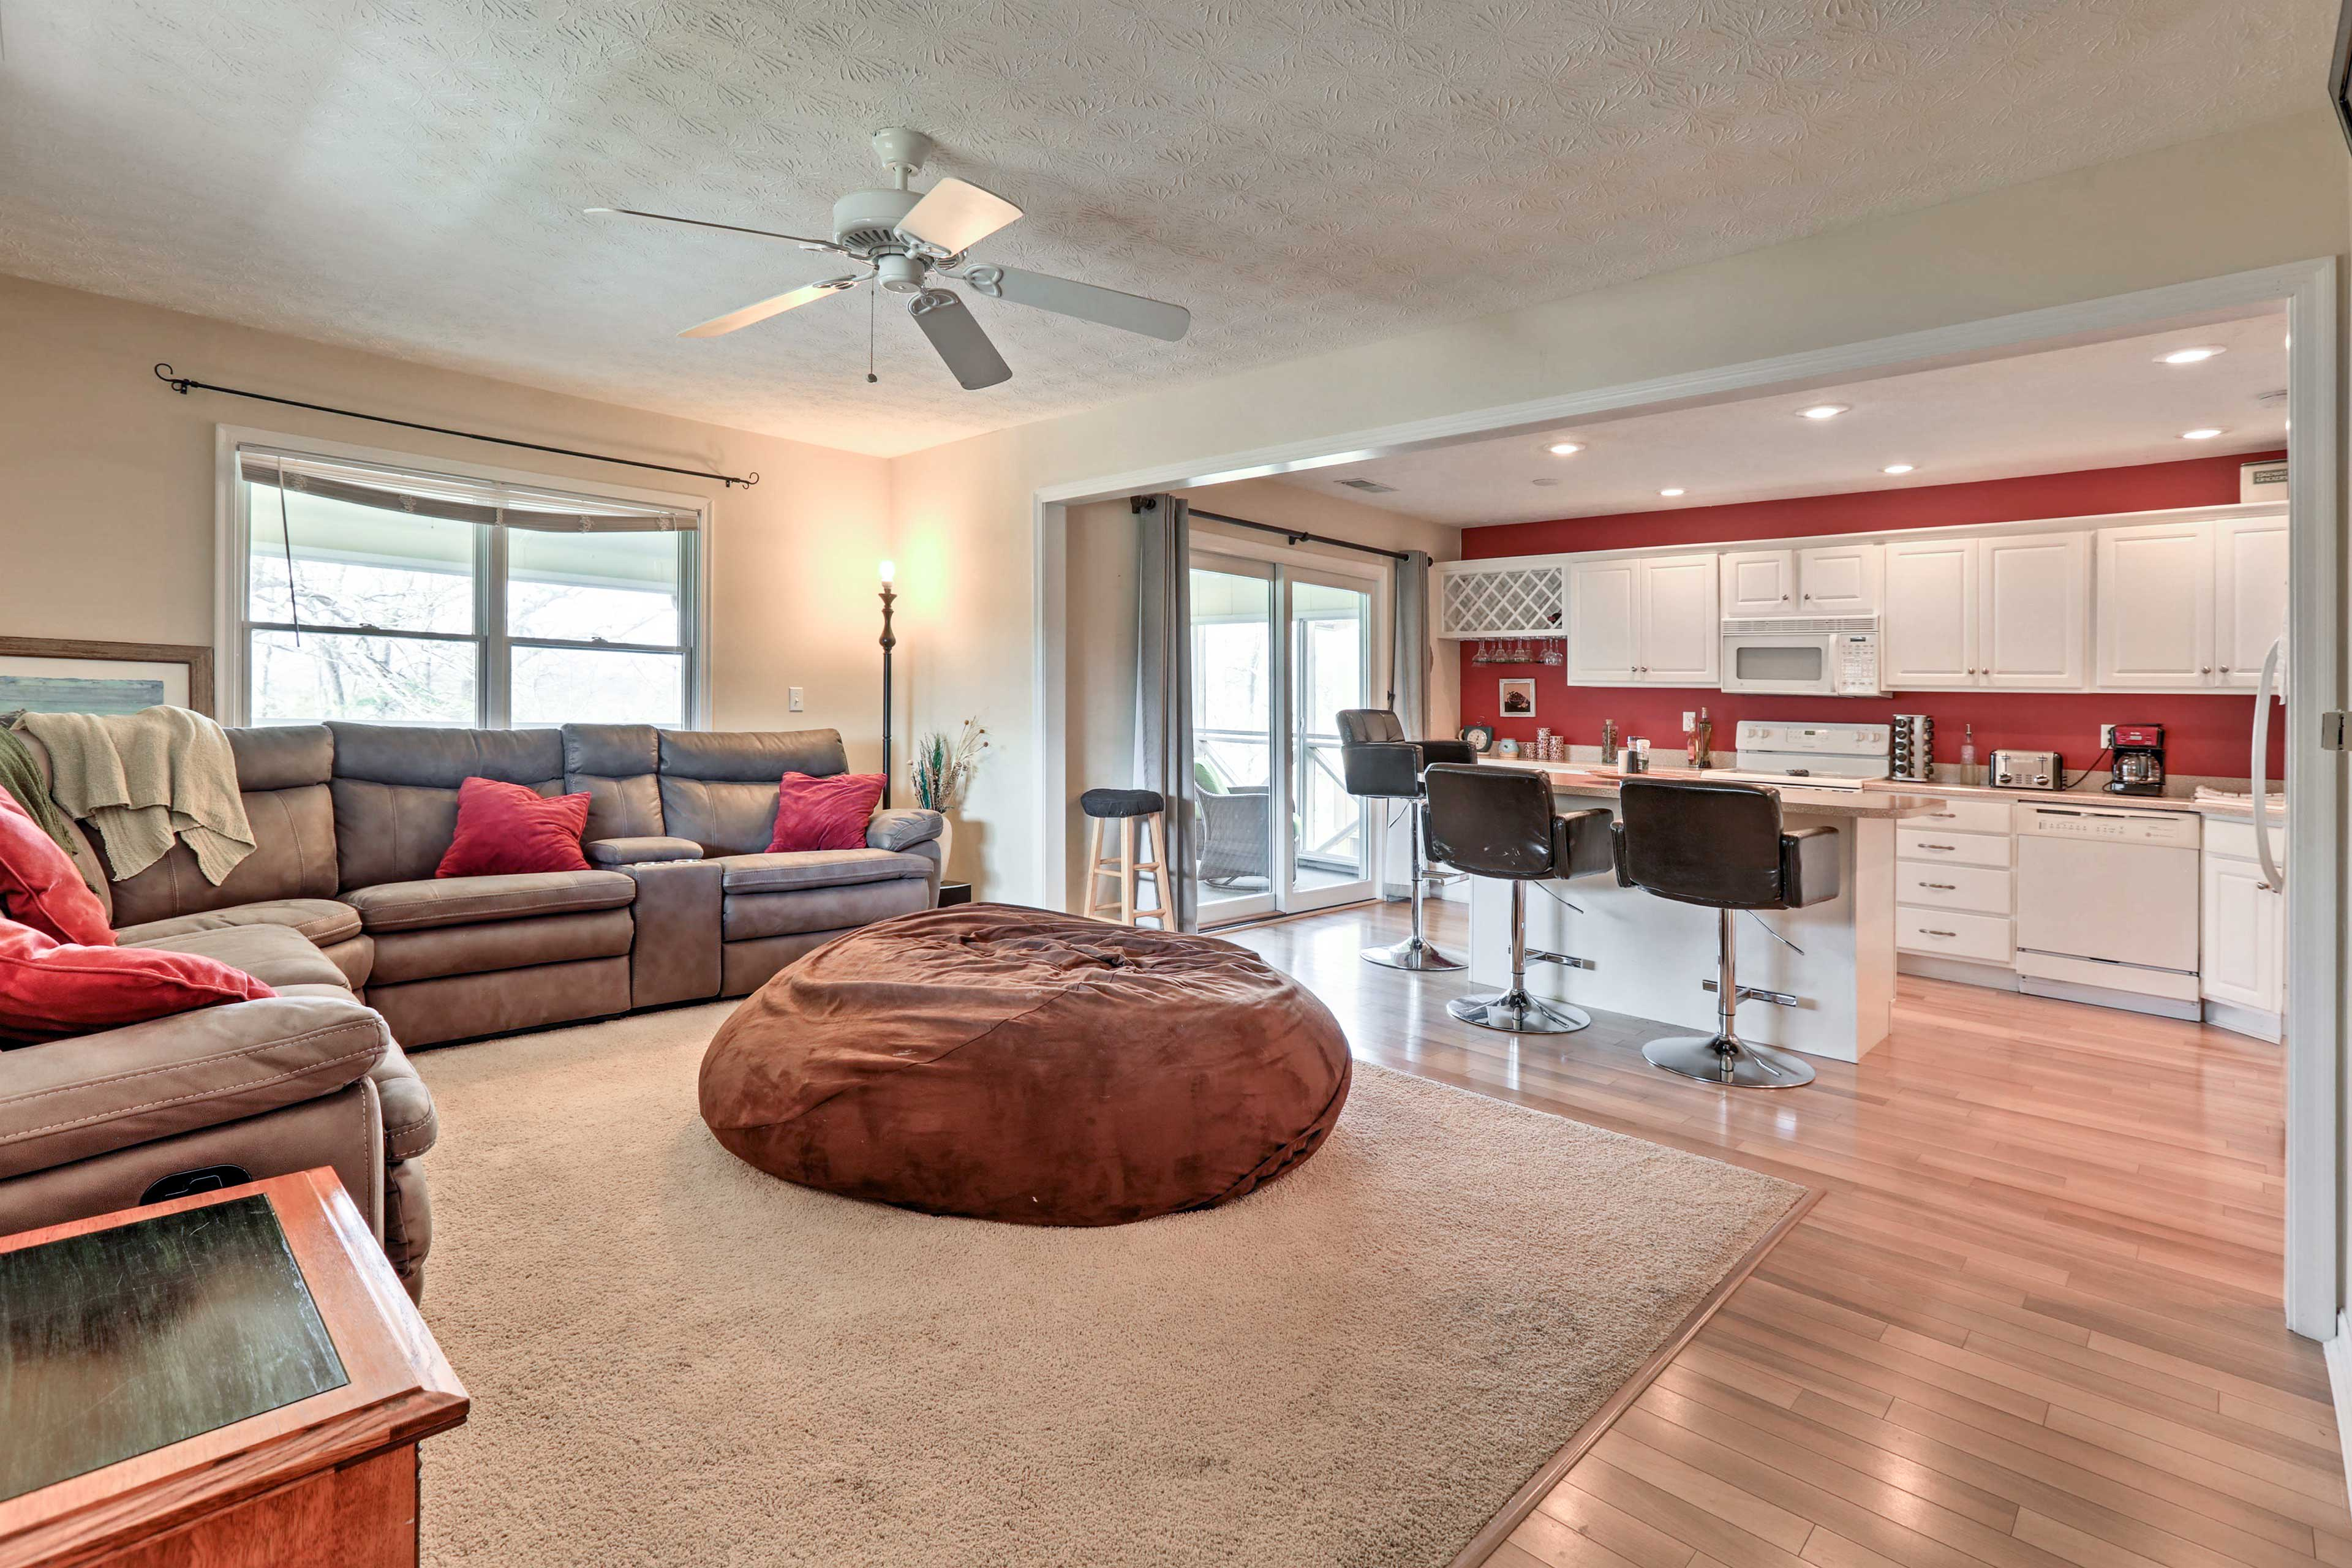 Make yourself at home in this cozy Bronston vacation rental for 7.